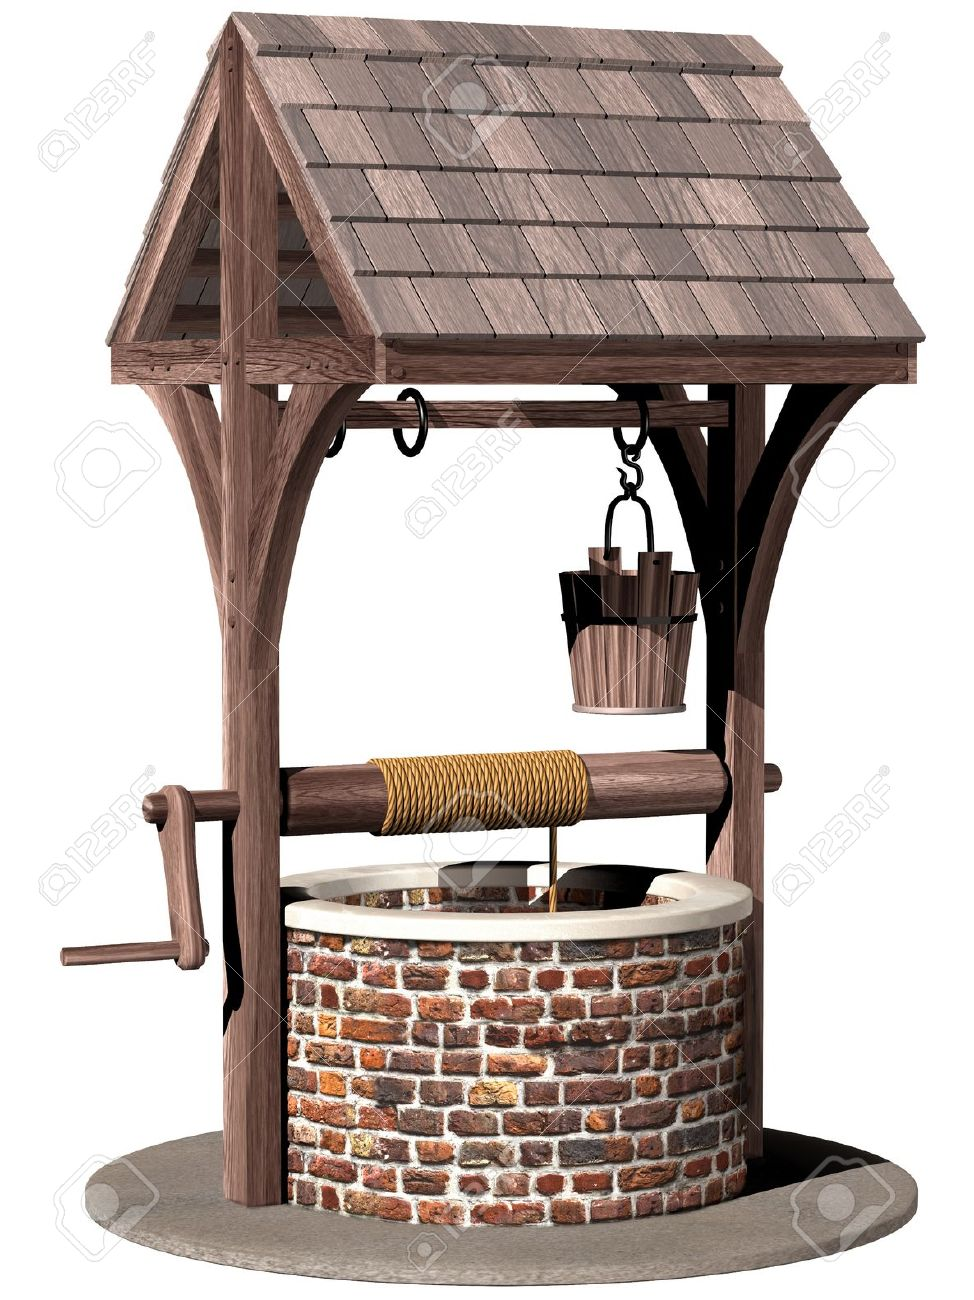 isolated illustration of an ancient and magical wishing well stock